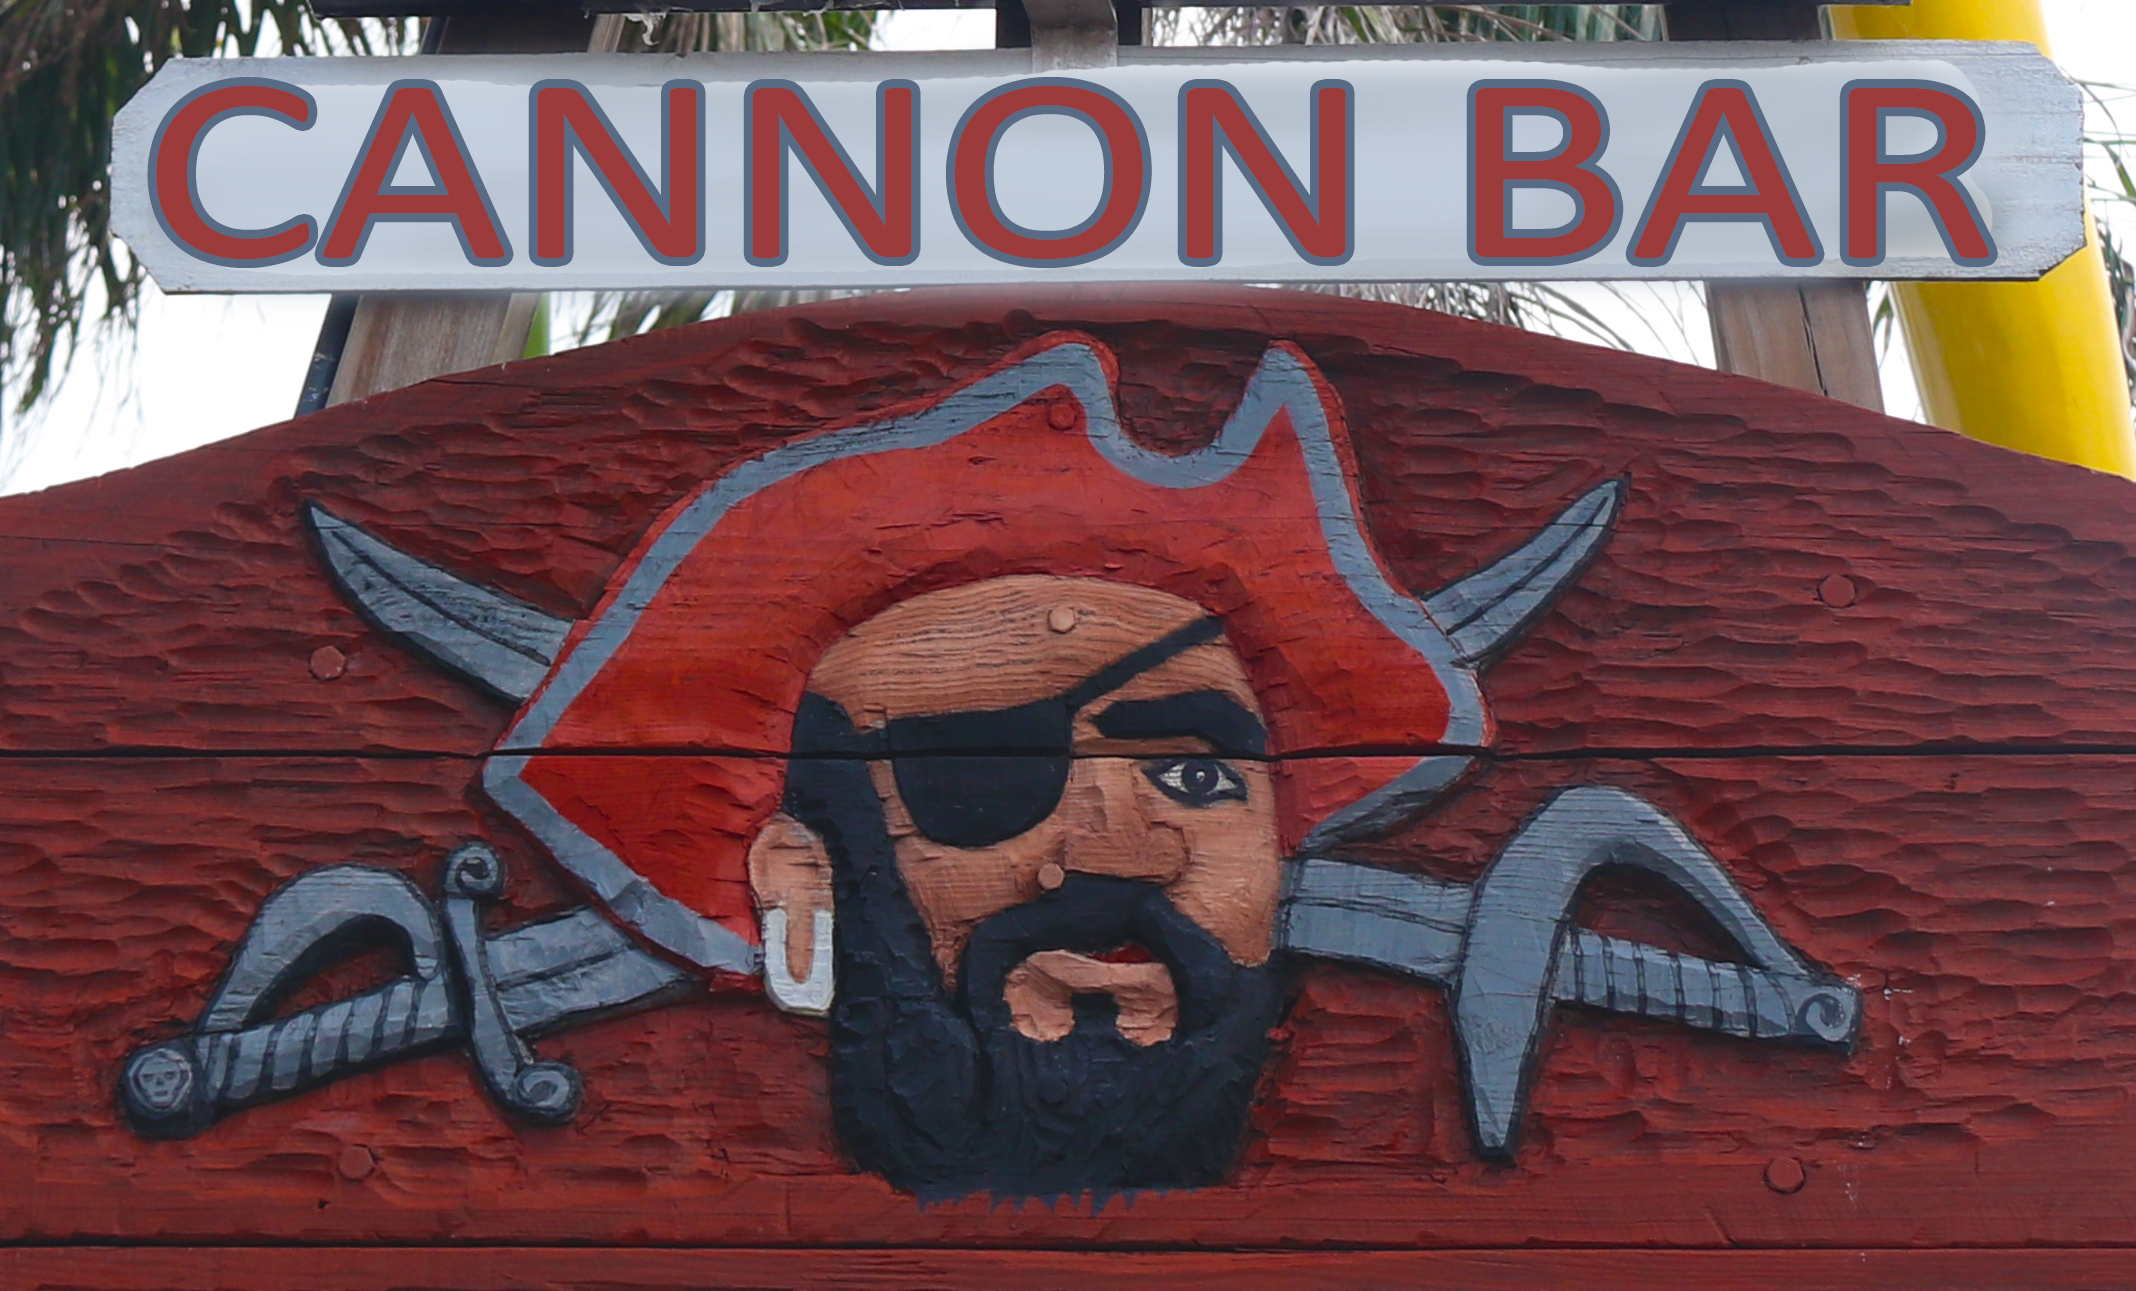 The Cannon Bar at Pirate's Landing